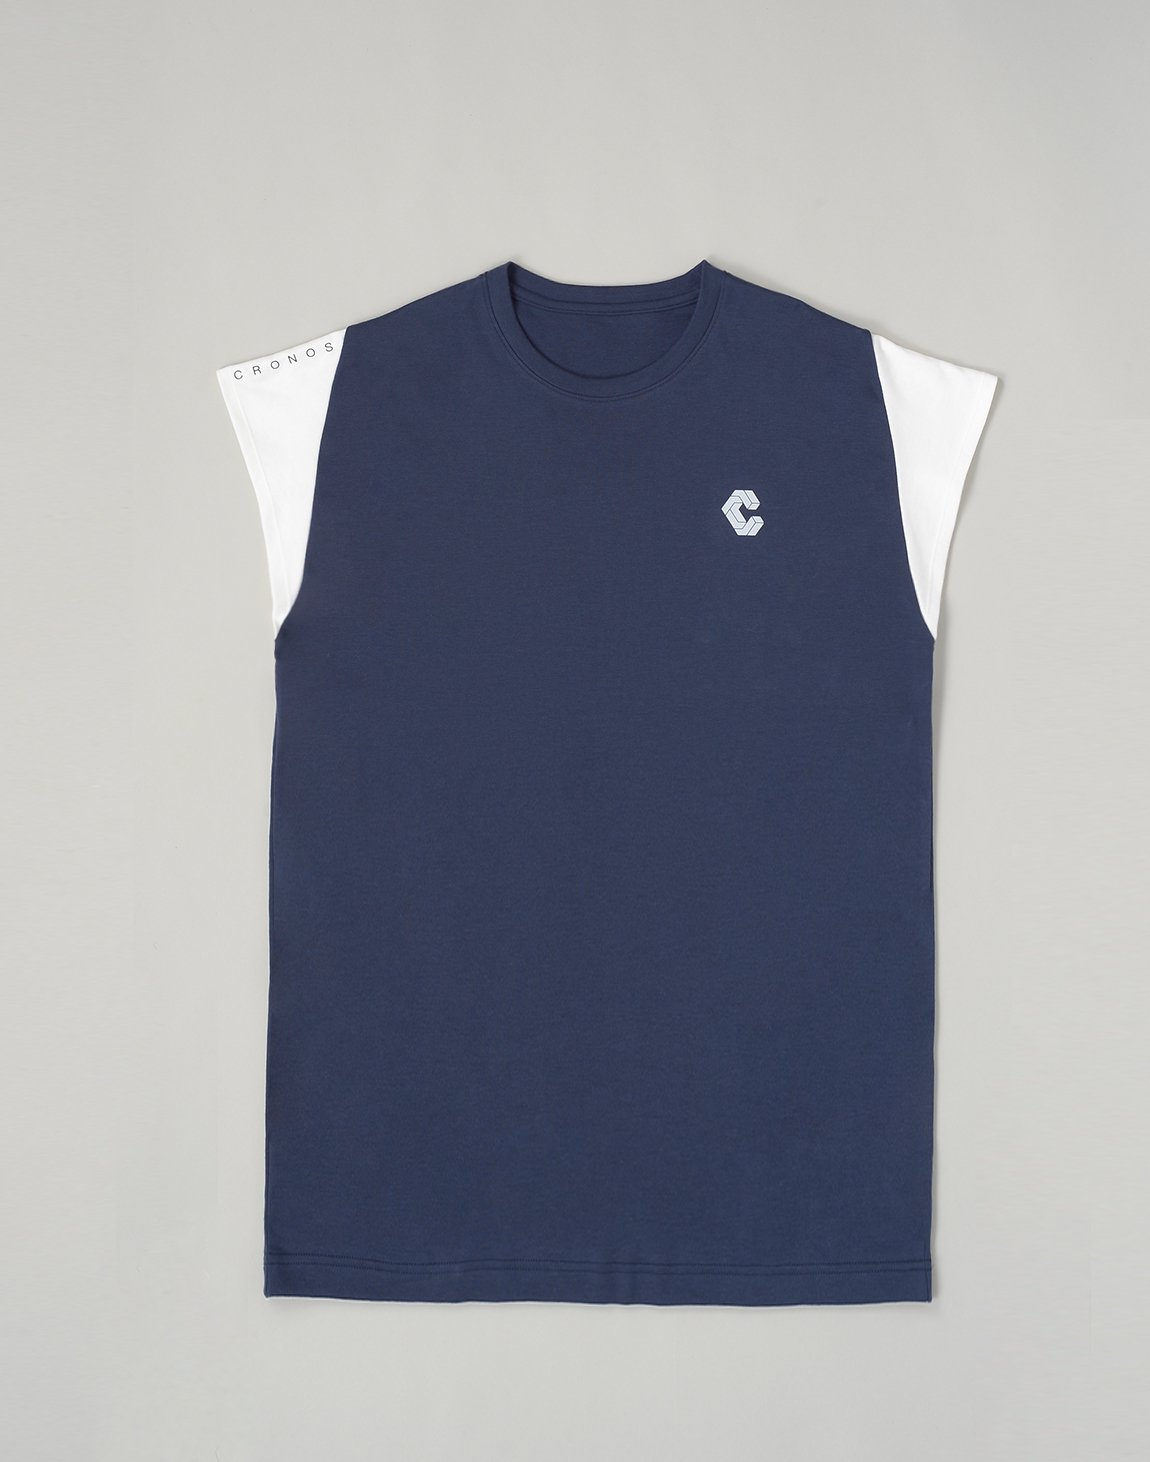 <img class='new_mark_img1' src='https://img.shop-pro.jp/img/new/icons1.gif' style='border:none;display:inline;margin:0px;padding:0px;width:auto;' />CRONOS LATS LINE CAP SLEEVE TOP【NAVY】